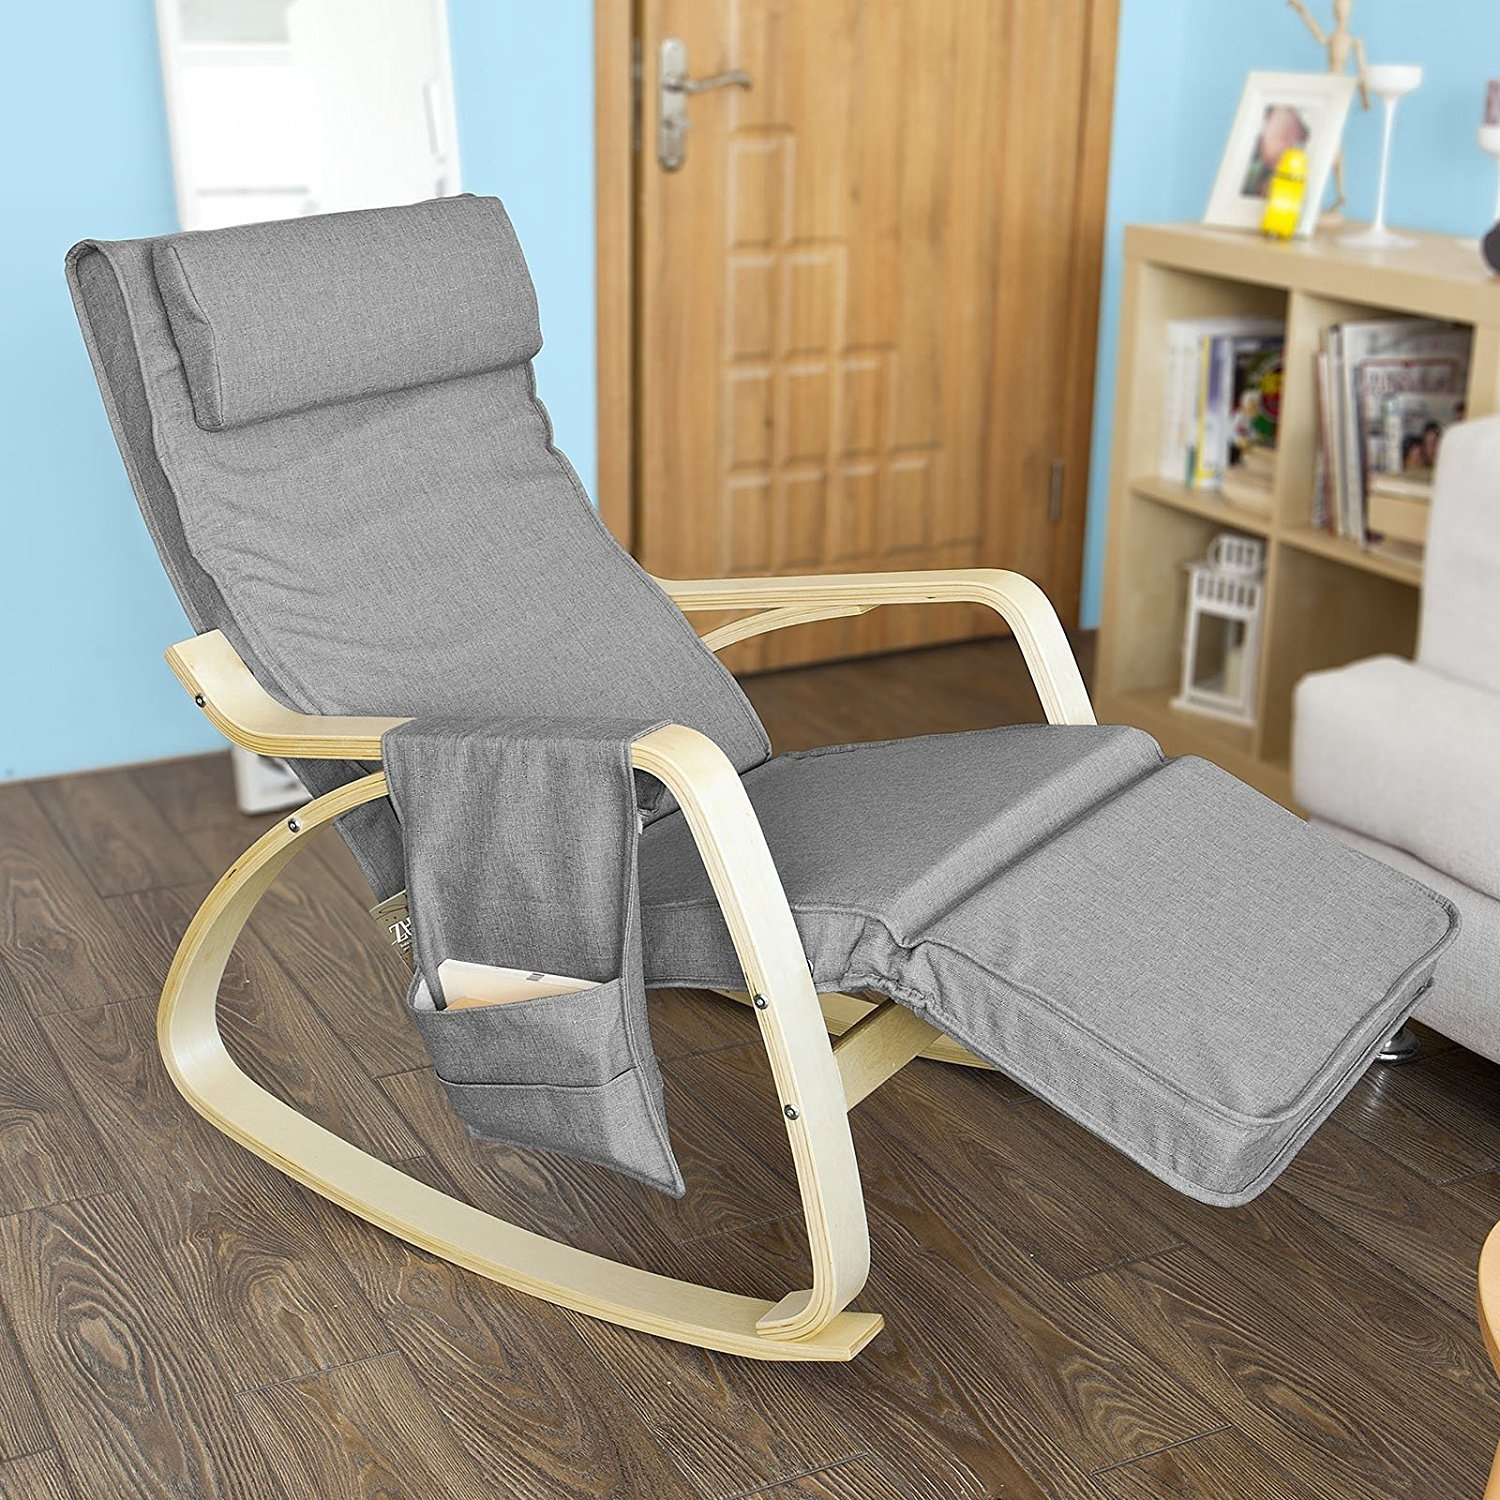 Inspiration about Rock Away Back Pain Using Rocking Chairs/inversiontableplus With Regard To Rocking Chairs With Footrest (#10 of 15)